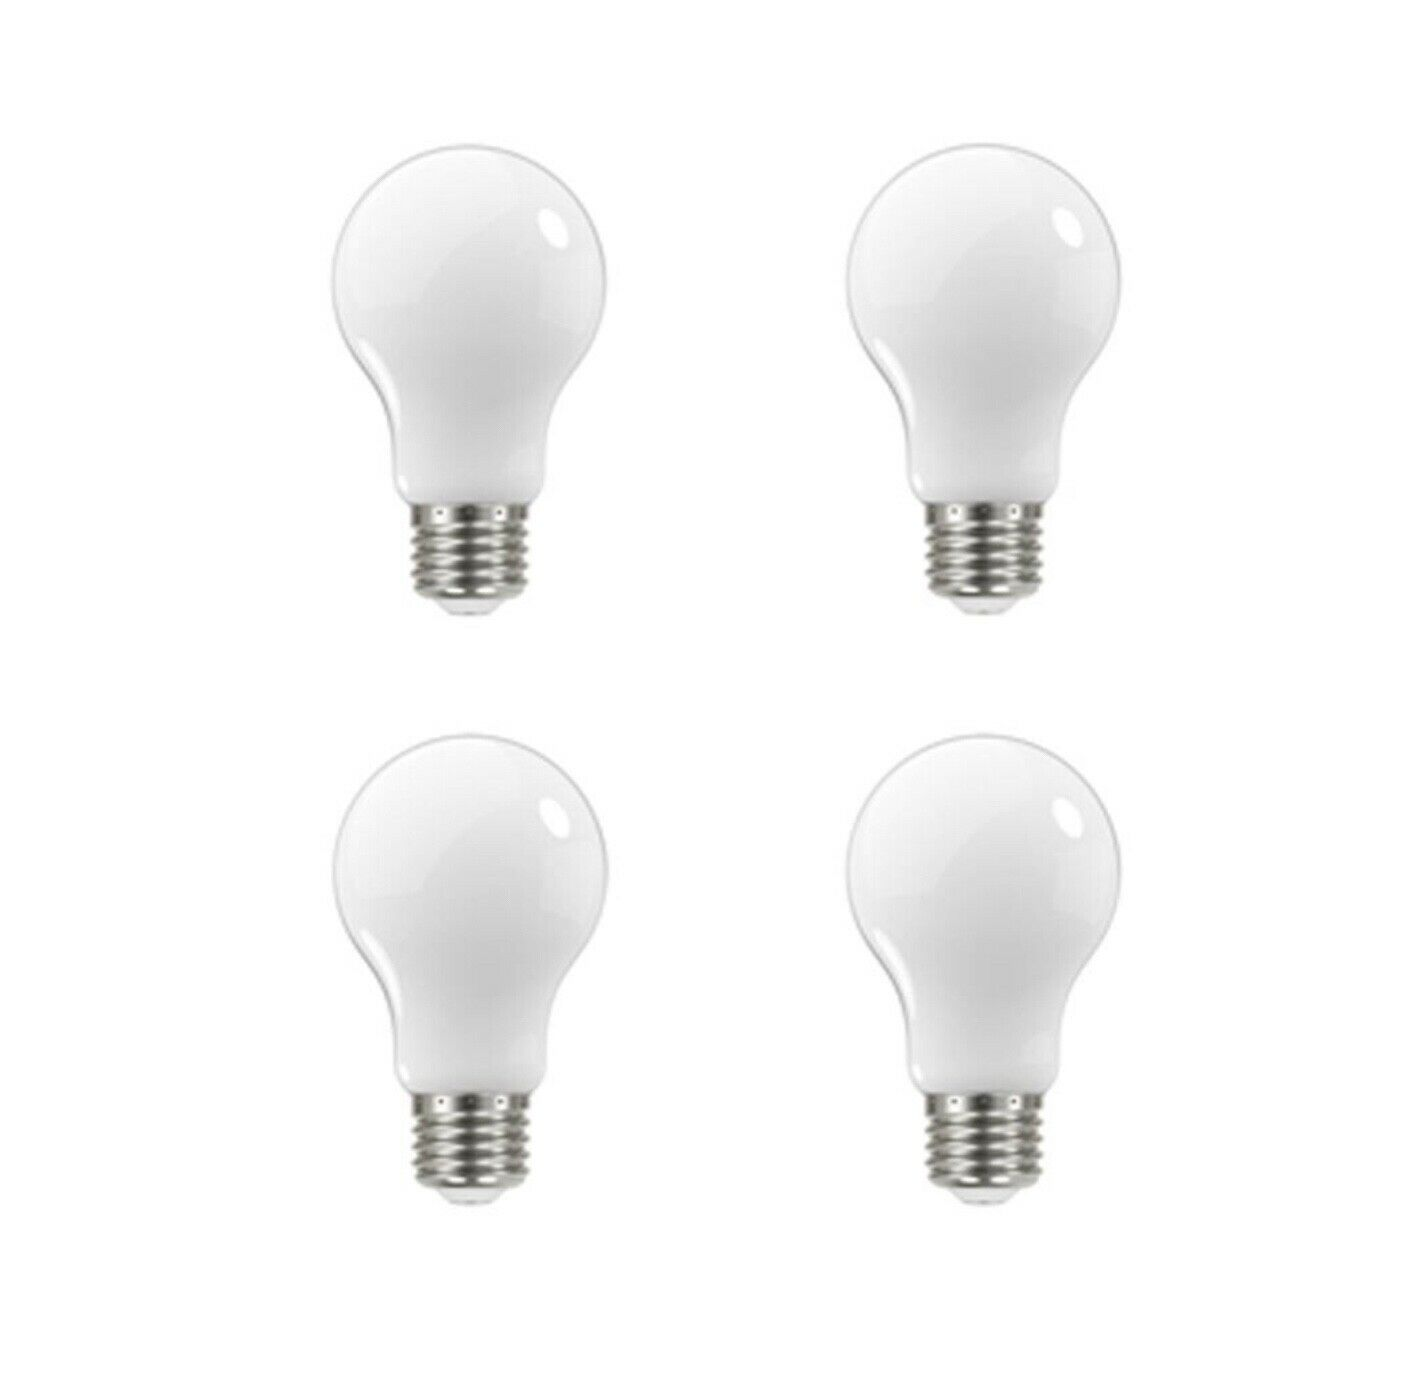 Primary image for EcoSmart 60-Watt A19 Dimmable Frosted Glass LED Light Bulb Daylight (4 Pack)